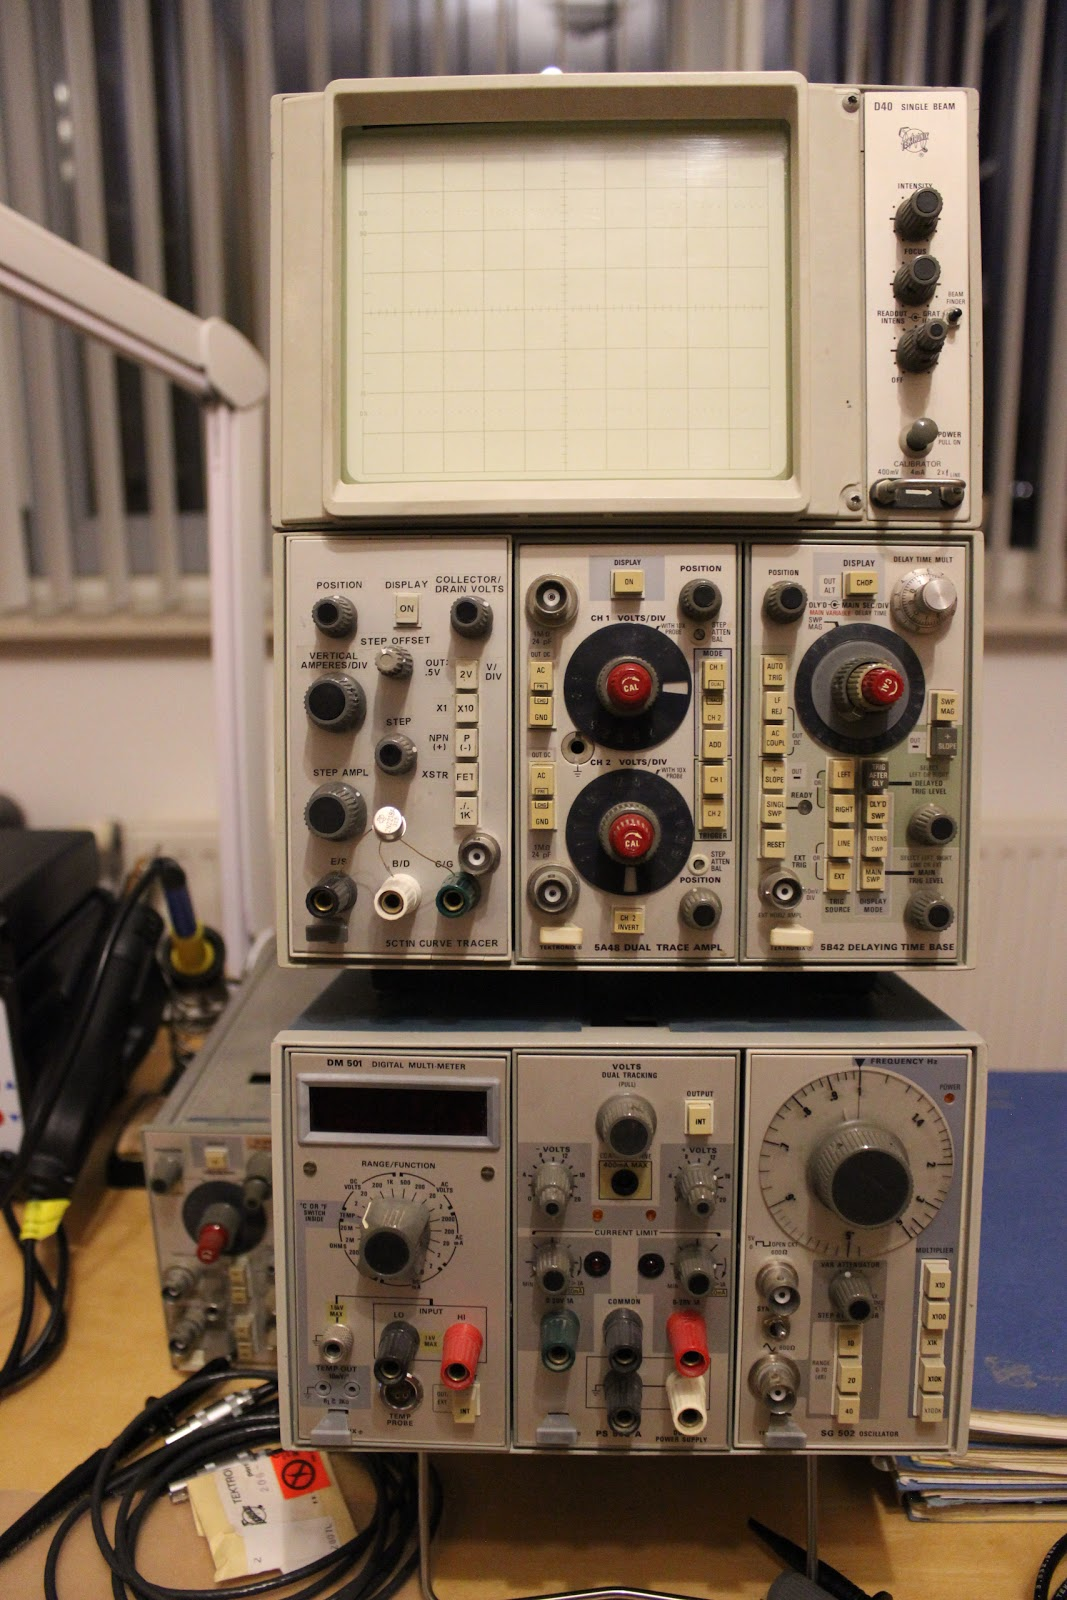 Paul's DIY electronics blog: DIY build of the Tektronix 5CT1 Curve